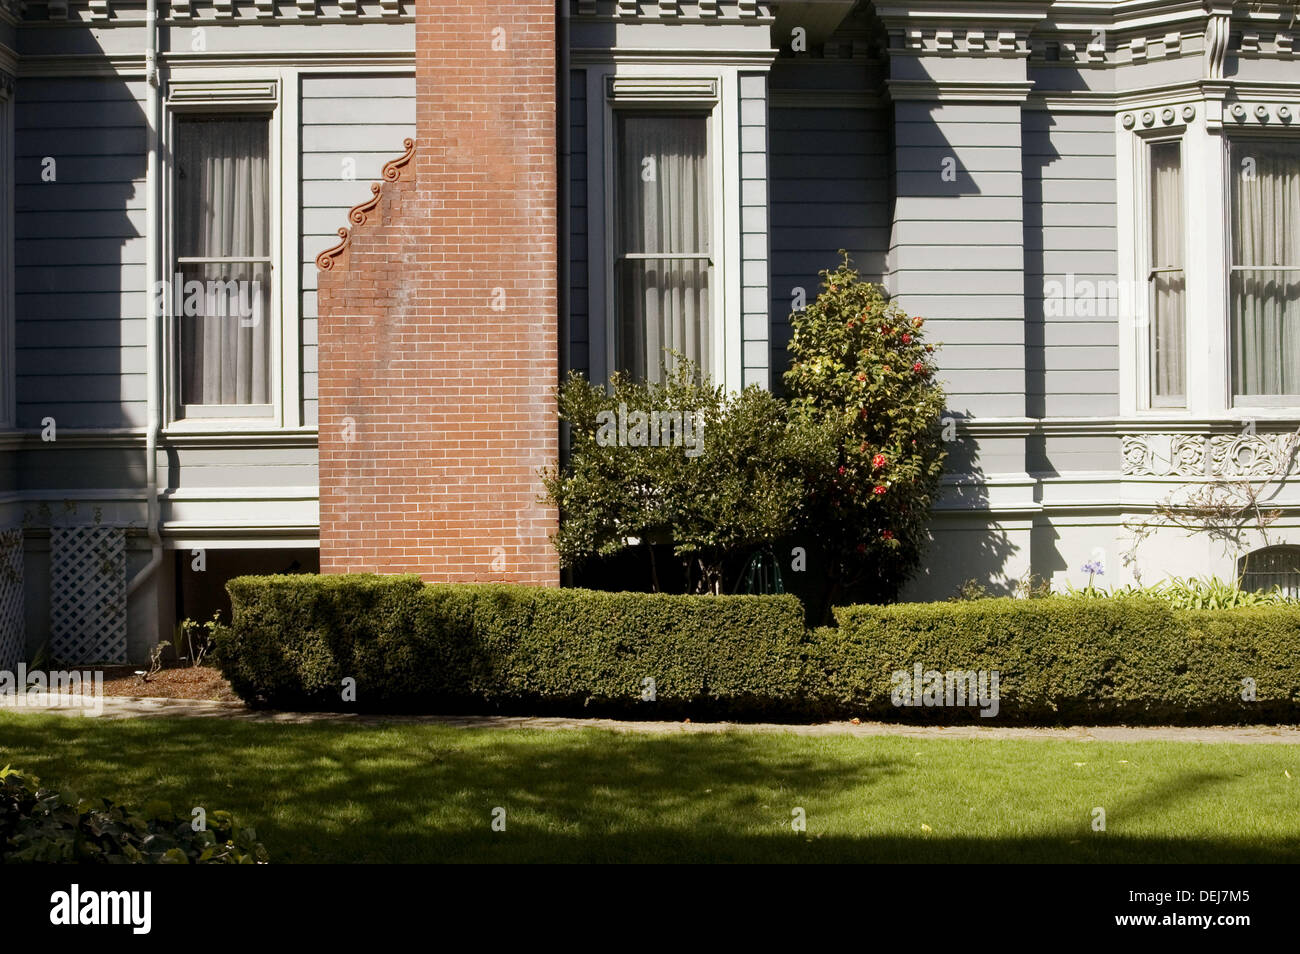 Haas-Lilienthal House, an historic Victorian home in San Francisco. California. USA. - Stock Image